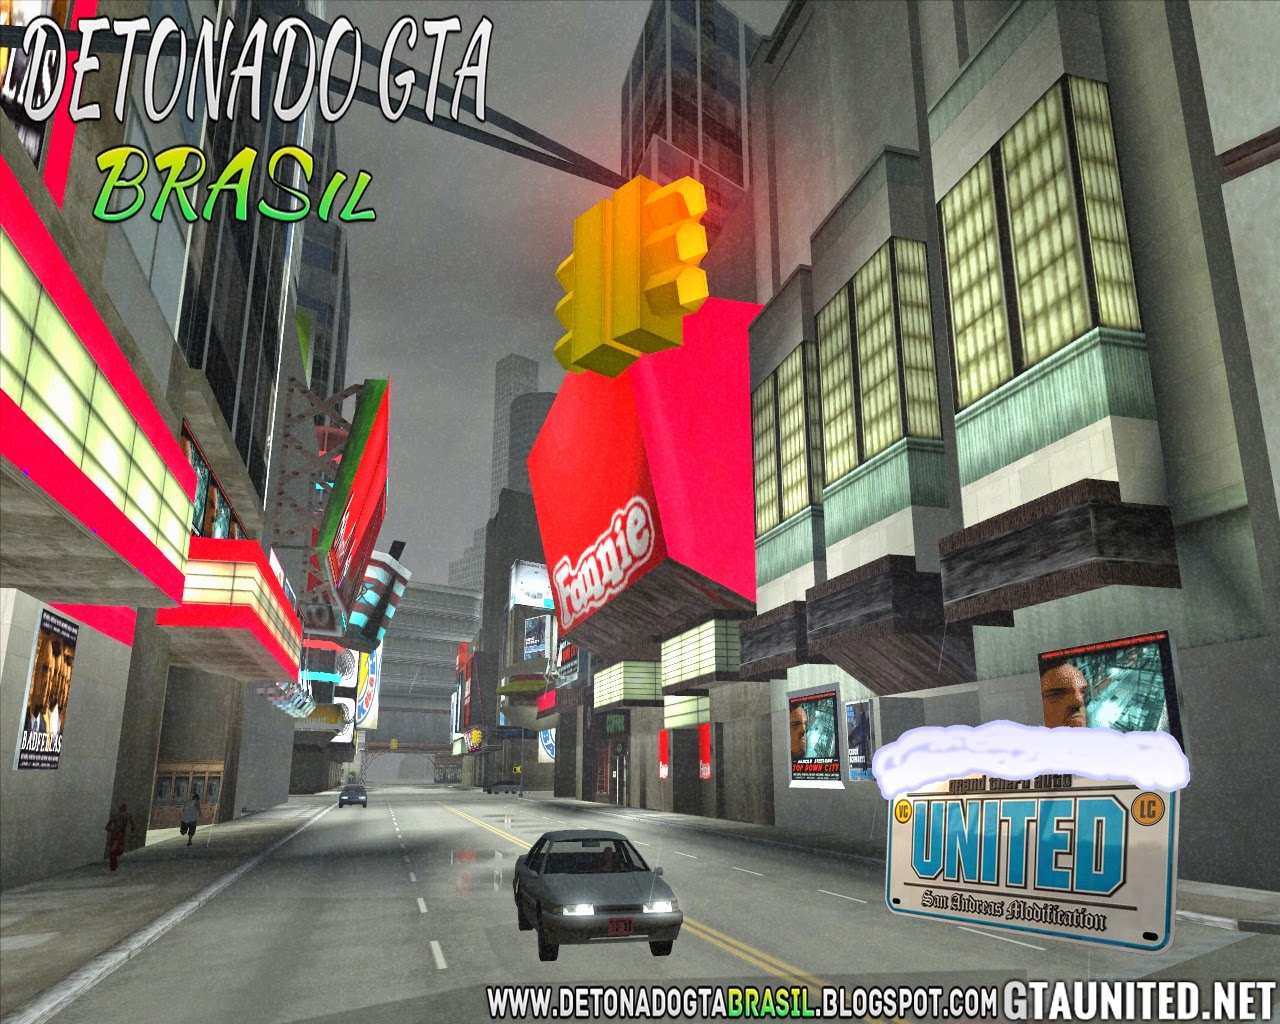 GTA United 1.2 (GTA San Andreas + GTA Vice City + GTA III)